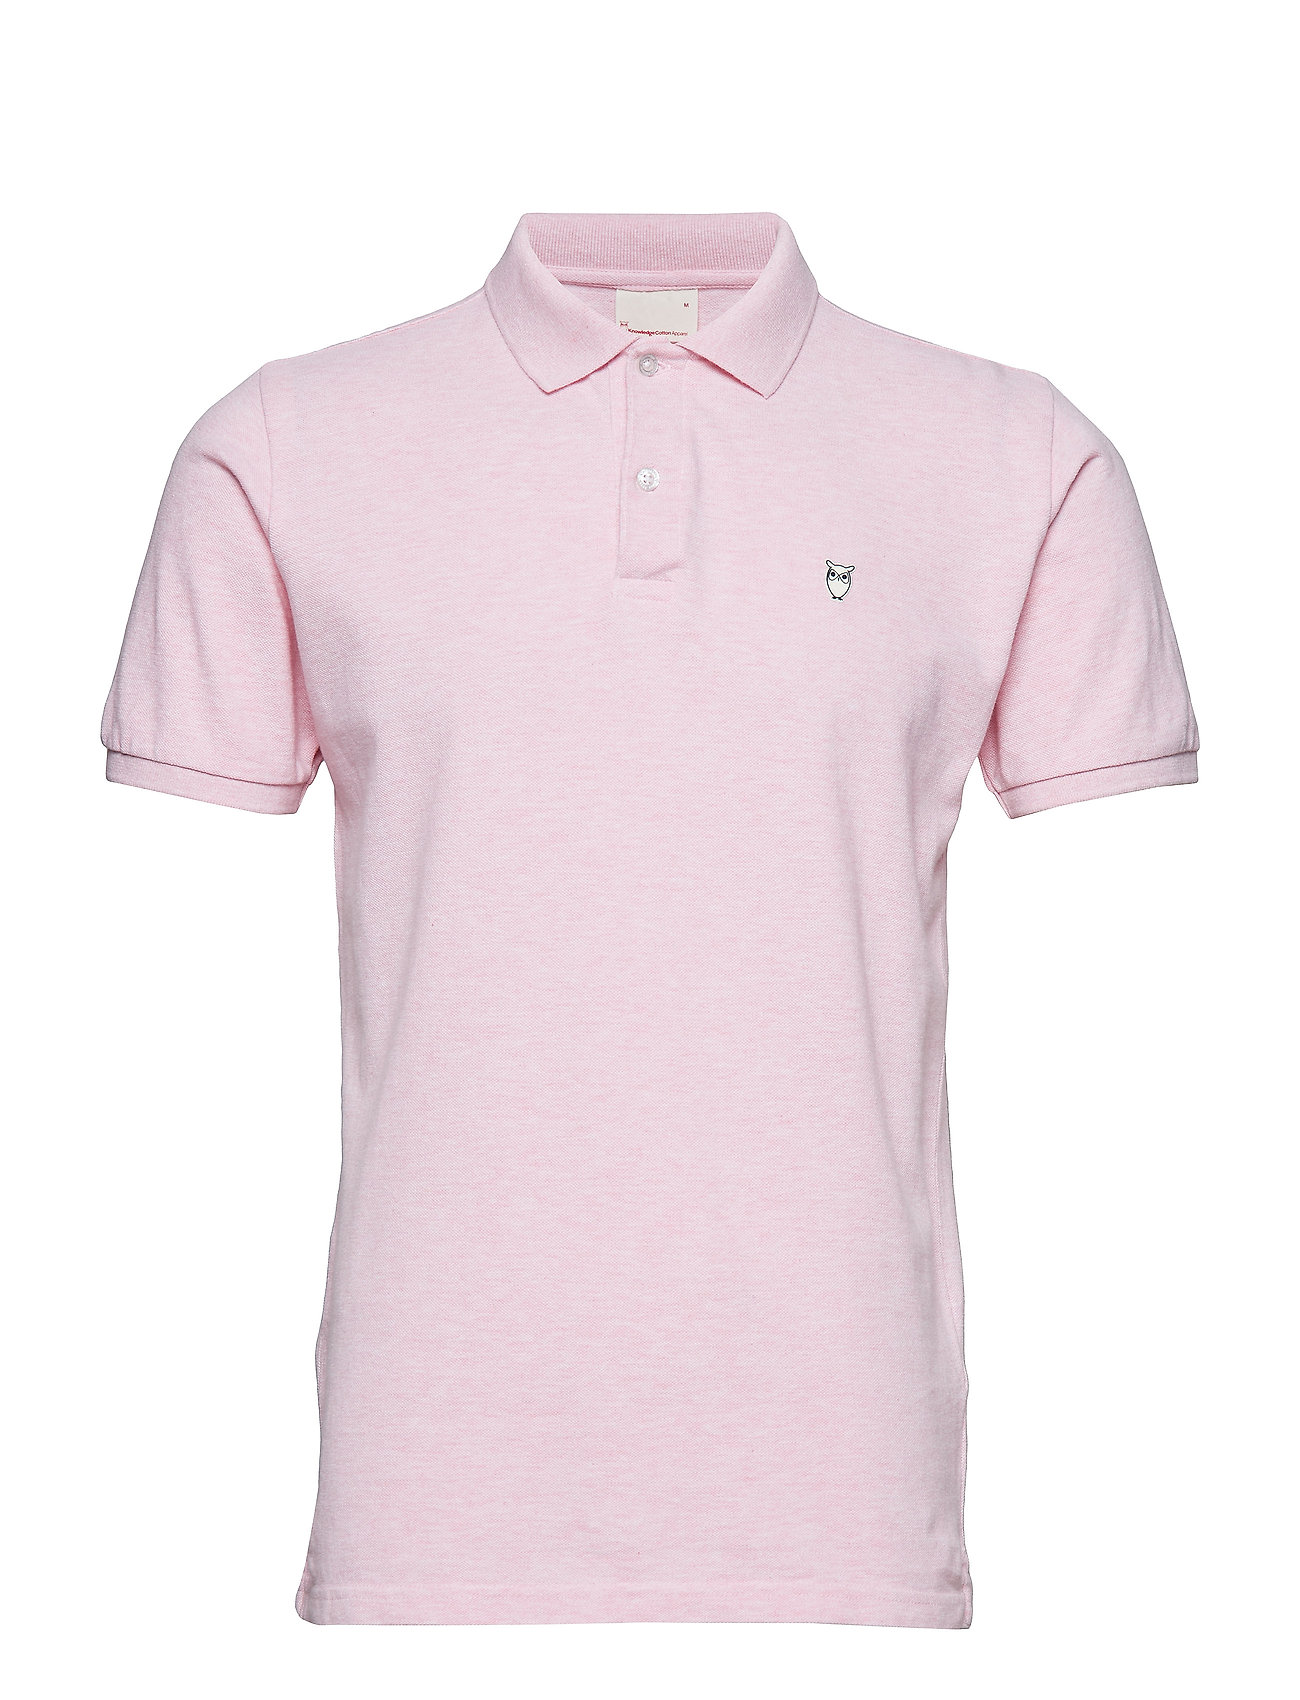 Knowledge Cotton Apparel Pique Polo -  GOTS/Vegan - PINK MELANGE